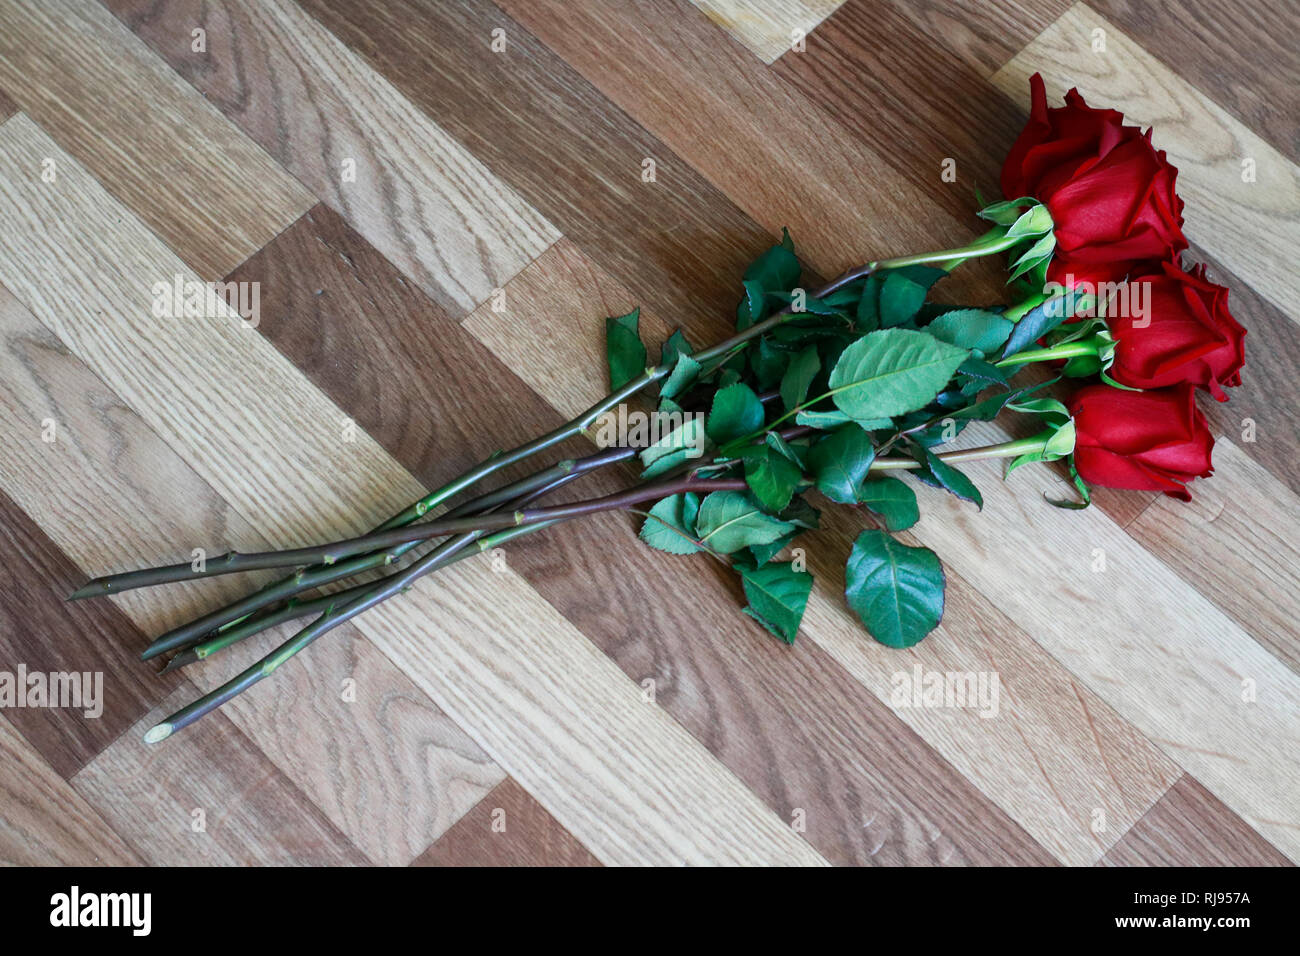 e721de040abeee Top View of Dark Red Roses Bunch on Wooden Floor. Close Up. Happy Valentine  Day